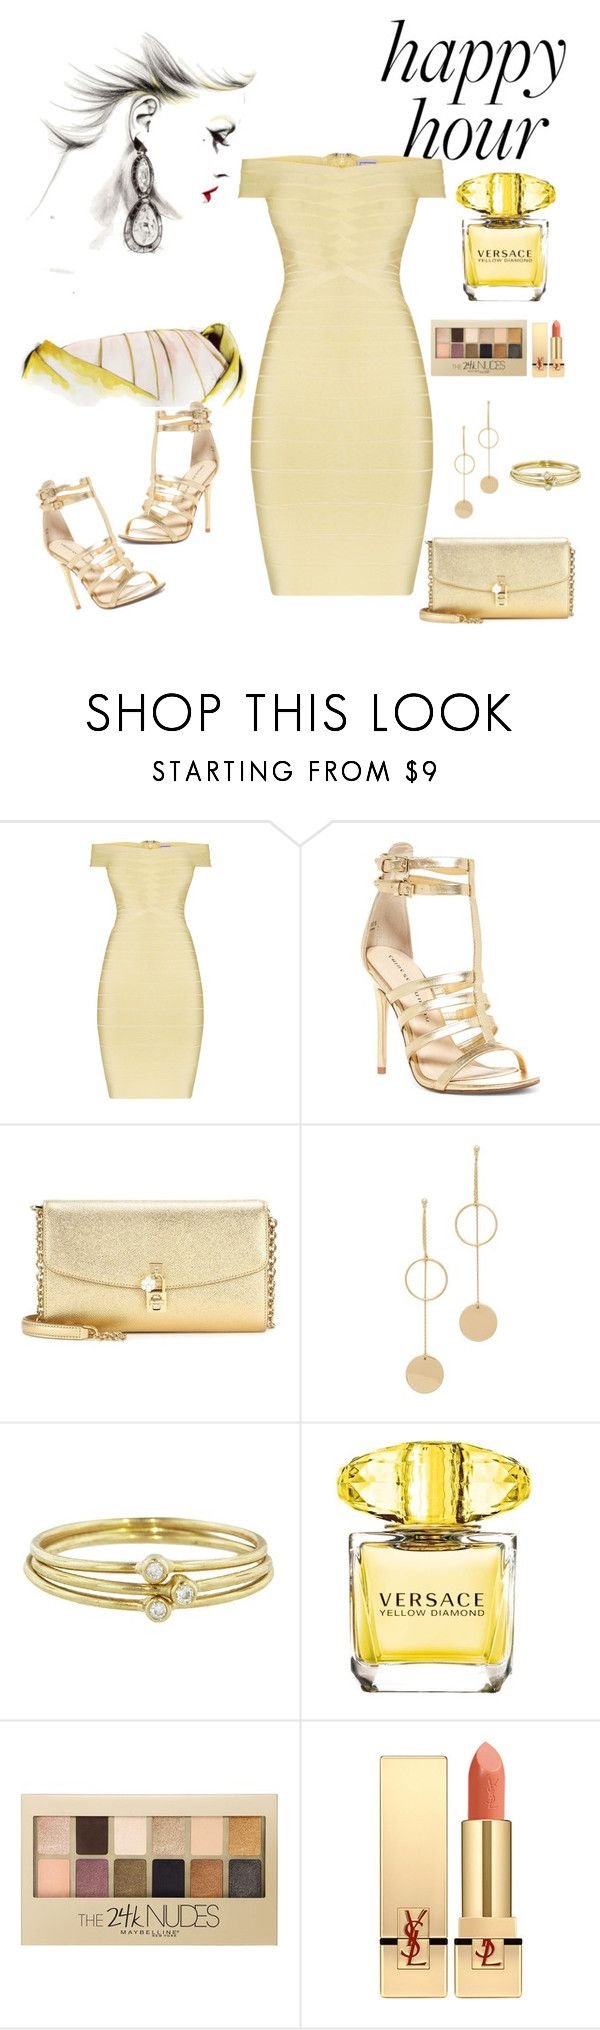 """""""Untitled #301"""" by aida0488 ❤ liked on Polyvore featuring Hervé Léger, Chinese Laundry, Dolce&Gabbana, Cloverpost, Jennifer Meyer Jewelry, Versace, Maybelline and Yves Saint Laurent"""